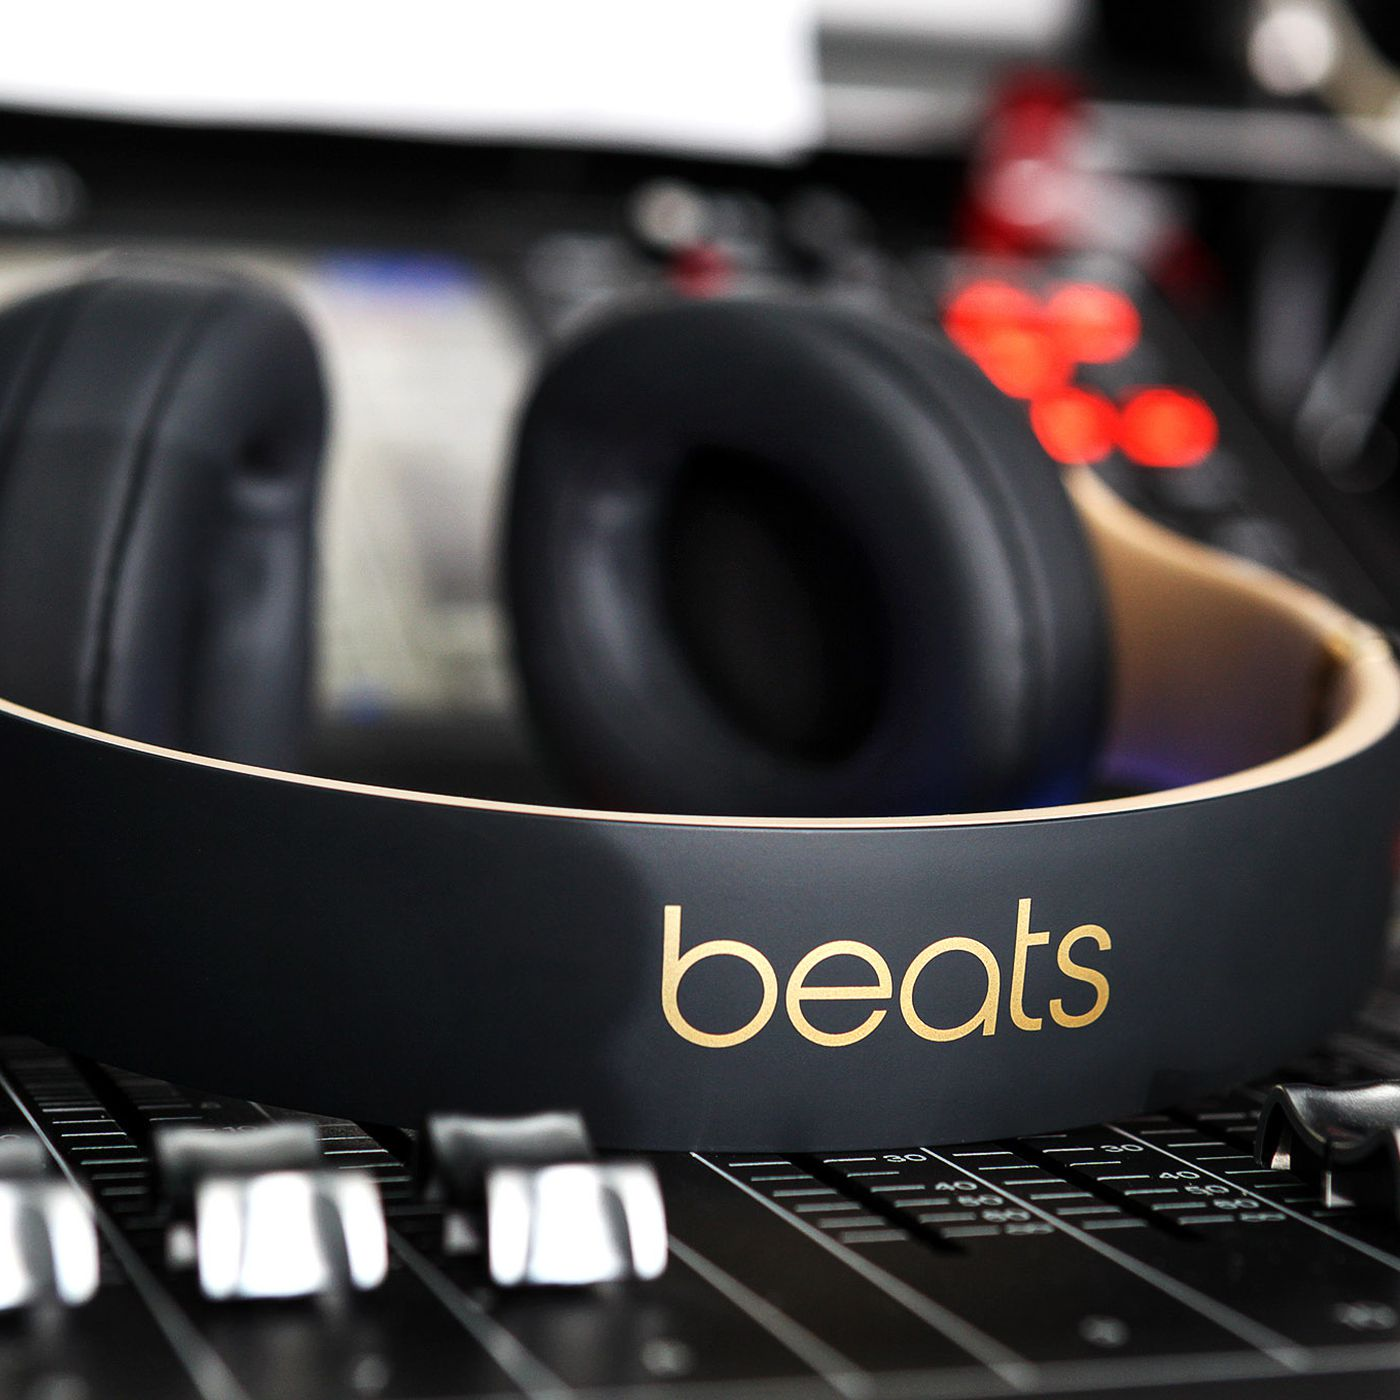 e09b112754d Does Apple still care about Beats? - The Verge